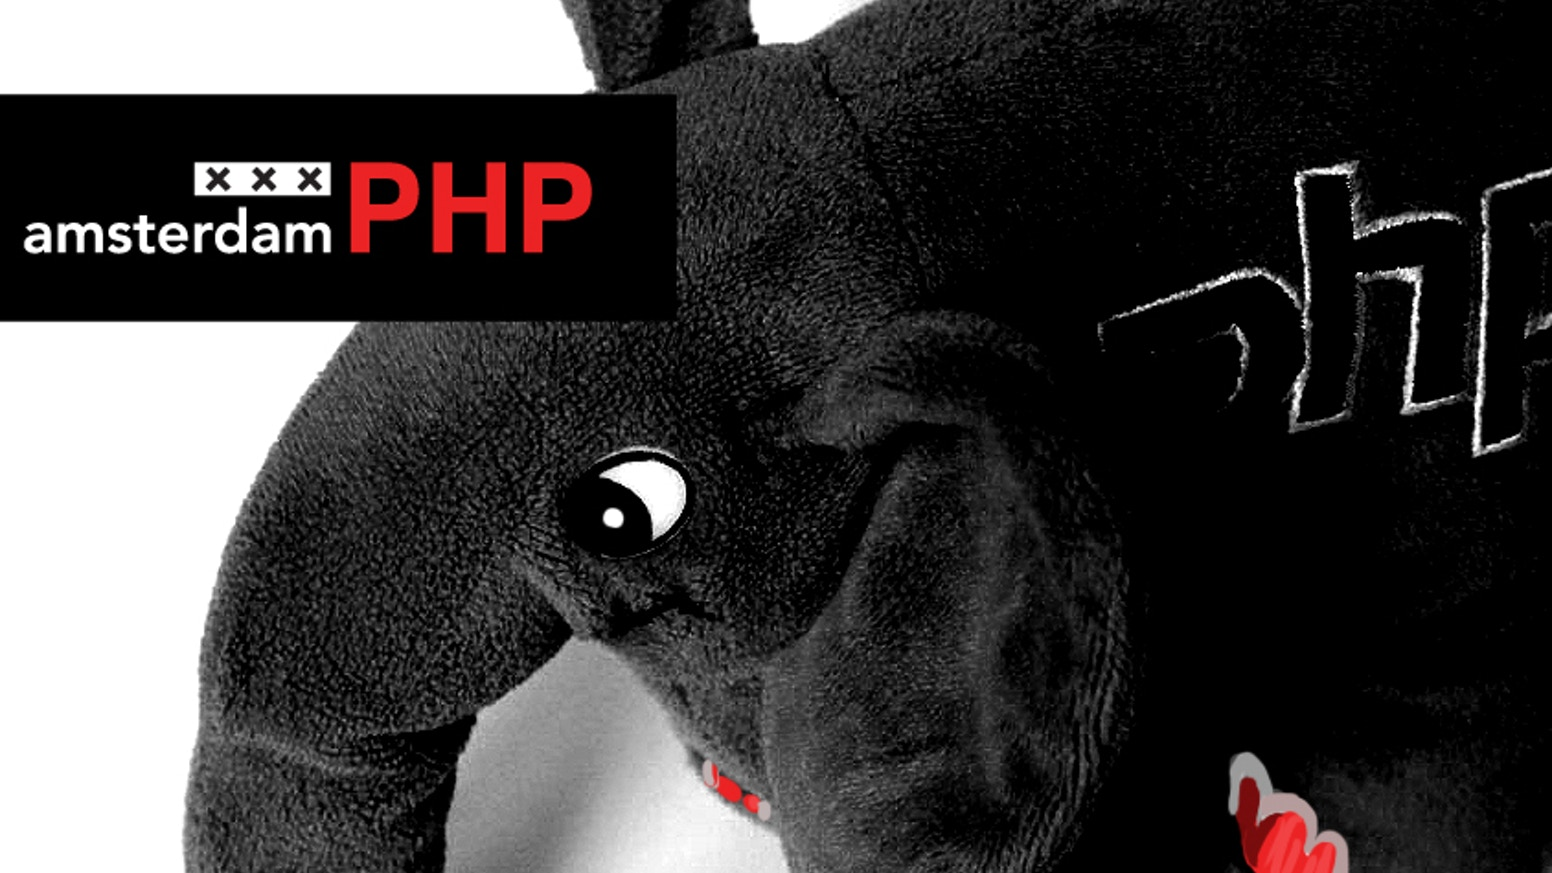 Help the AmsterdamPHP introduce a new color to the ElePHPant (Mascot of PHP) herd, help us create the black AmsterdamPHP elePHPant.